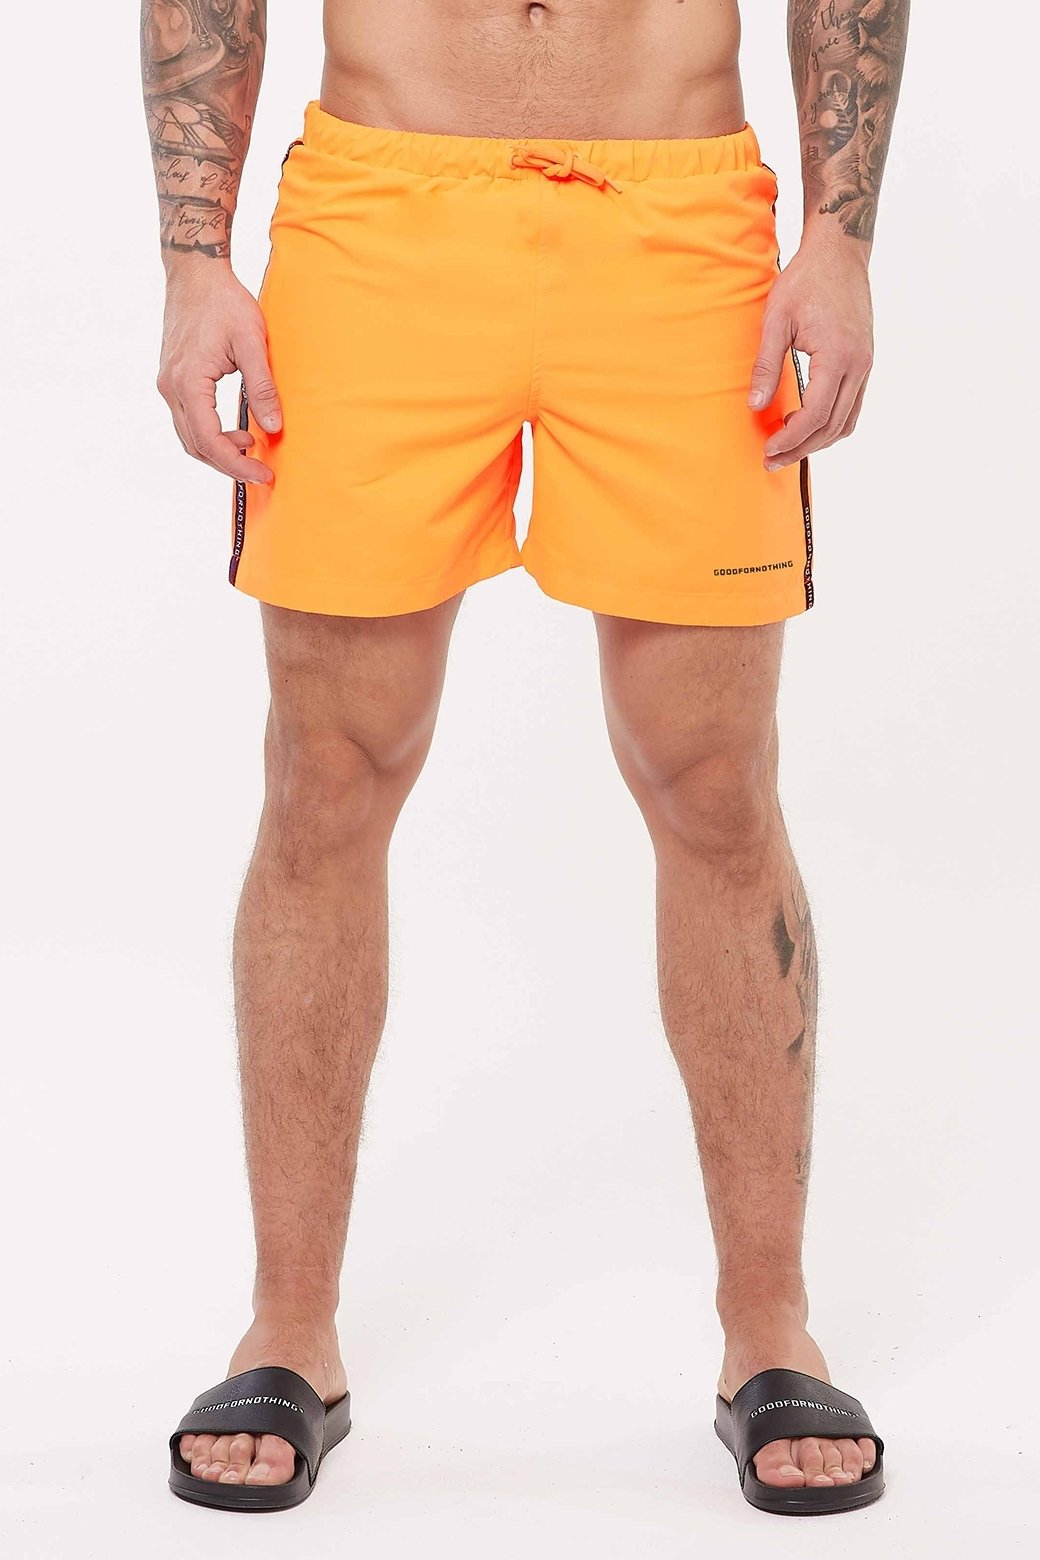 Future Orange Swim Shorts - ZANMODA